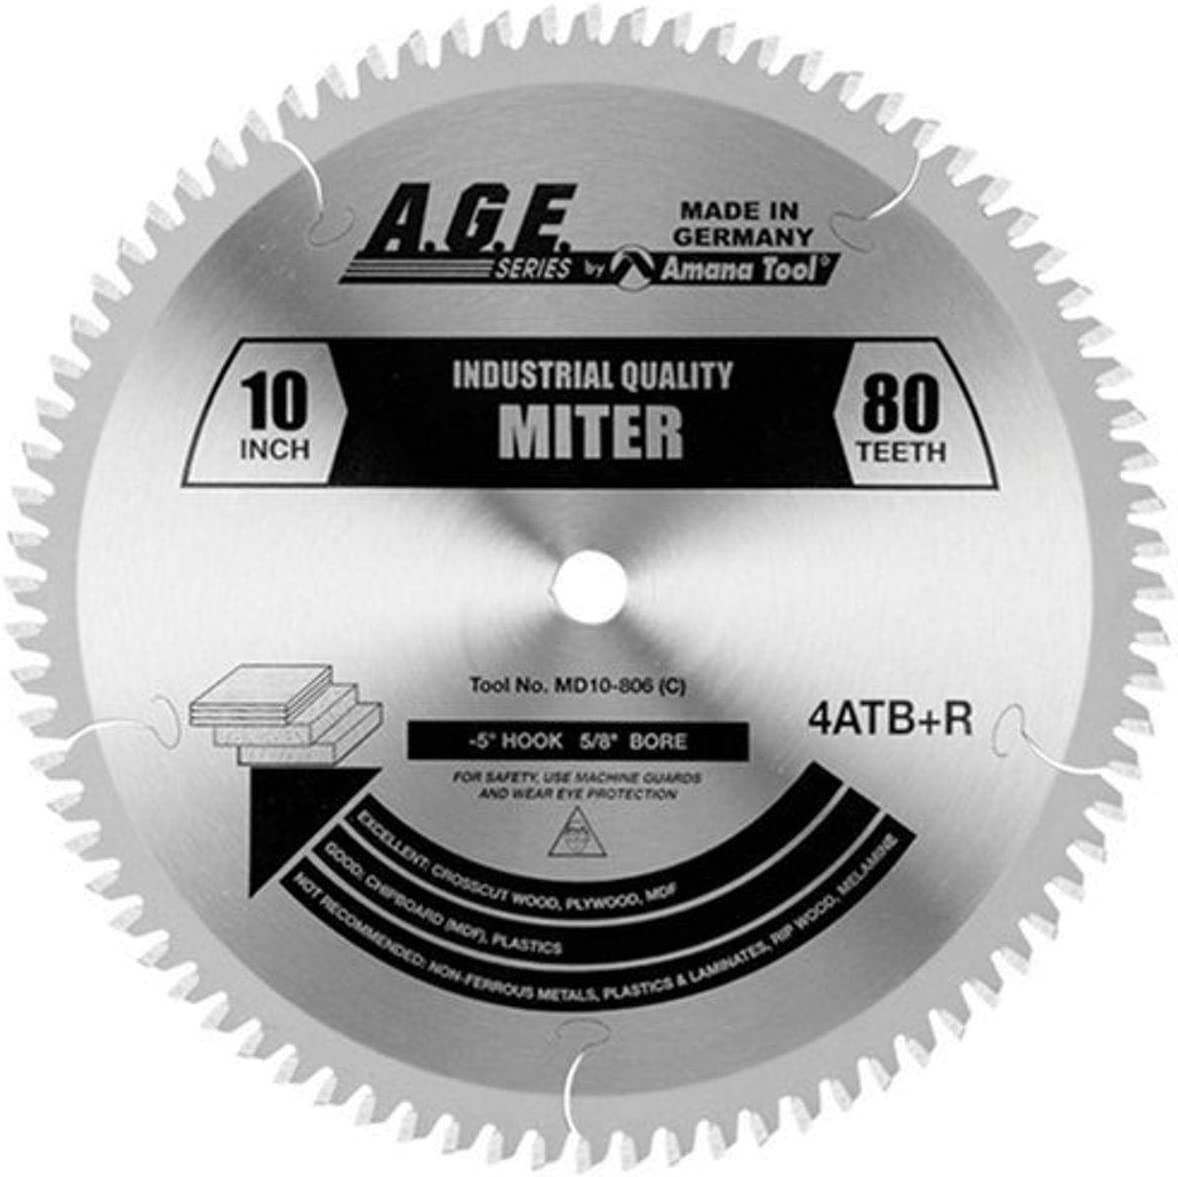 A.G.E. Series High quality - Heavy 4 years warranty Miter 10